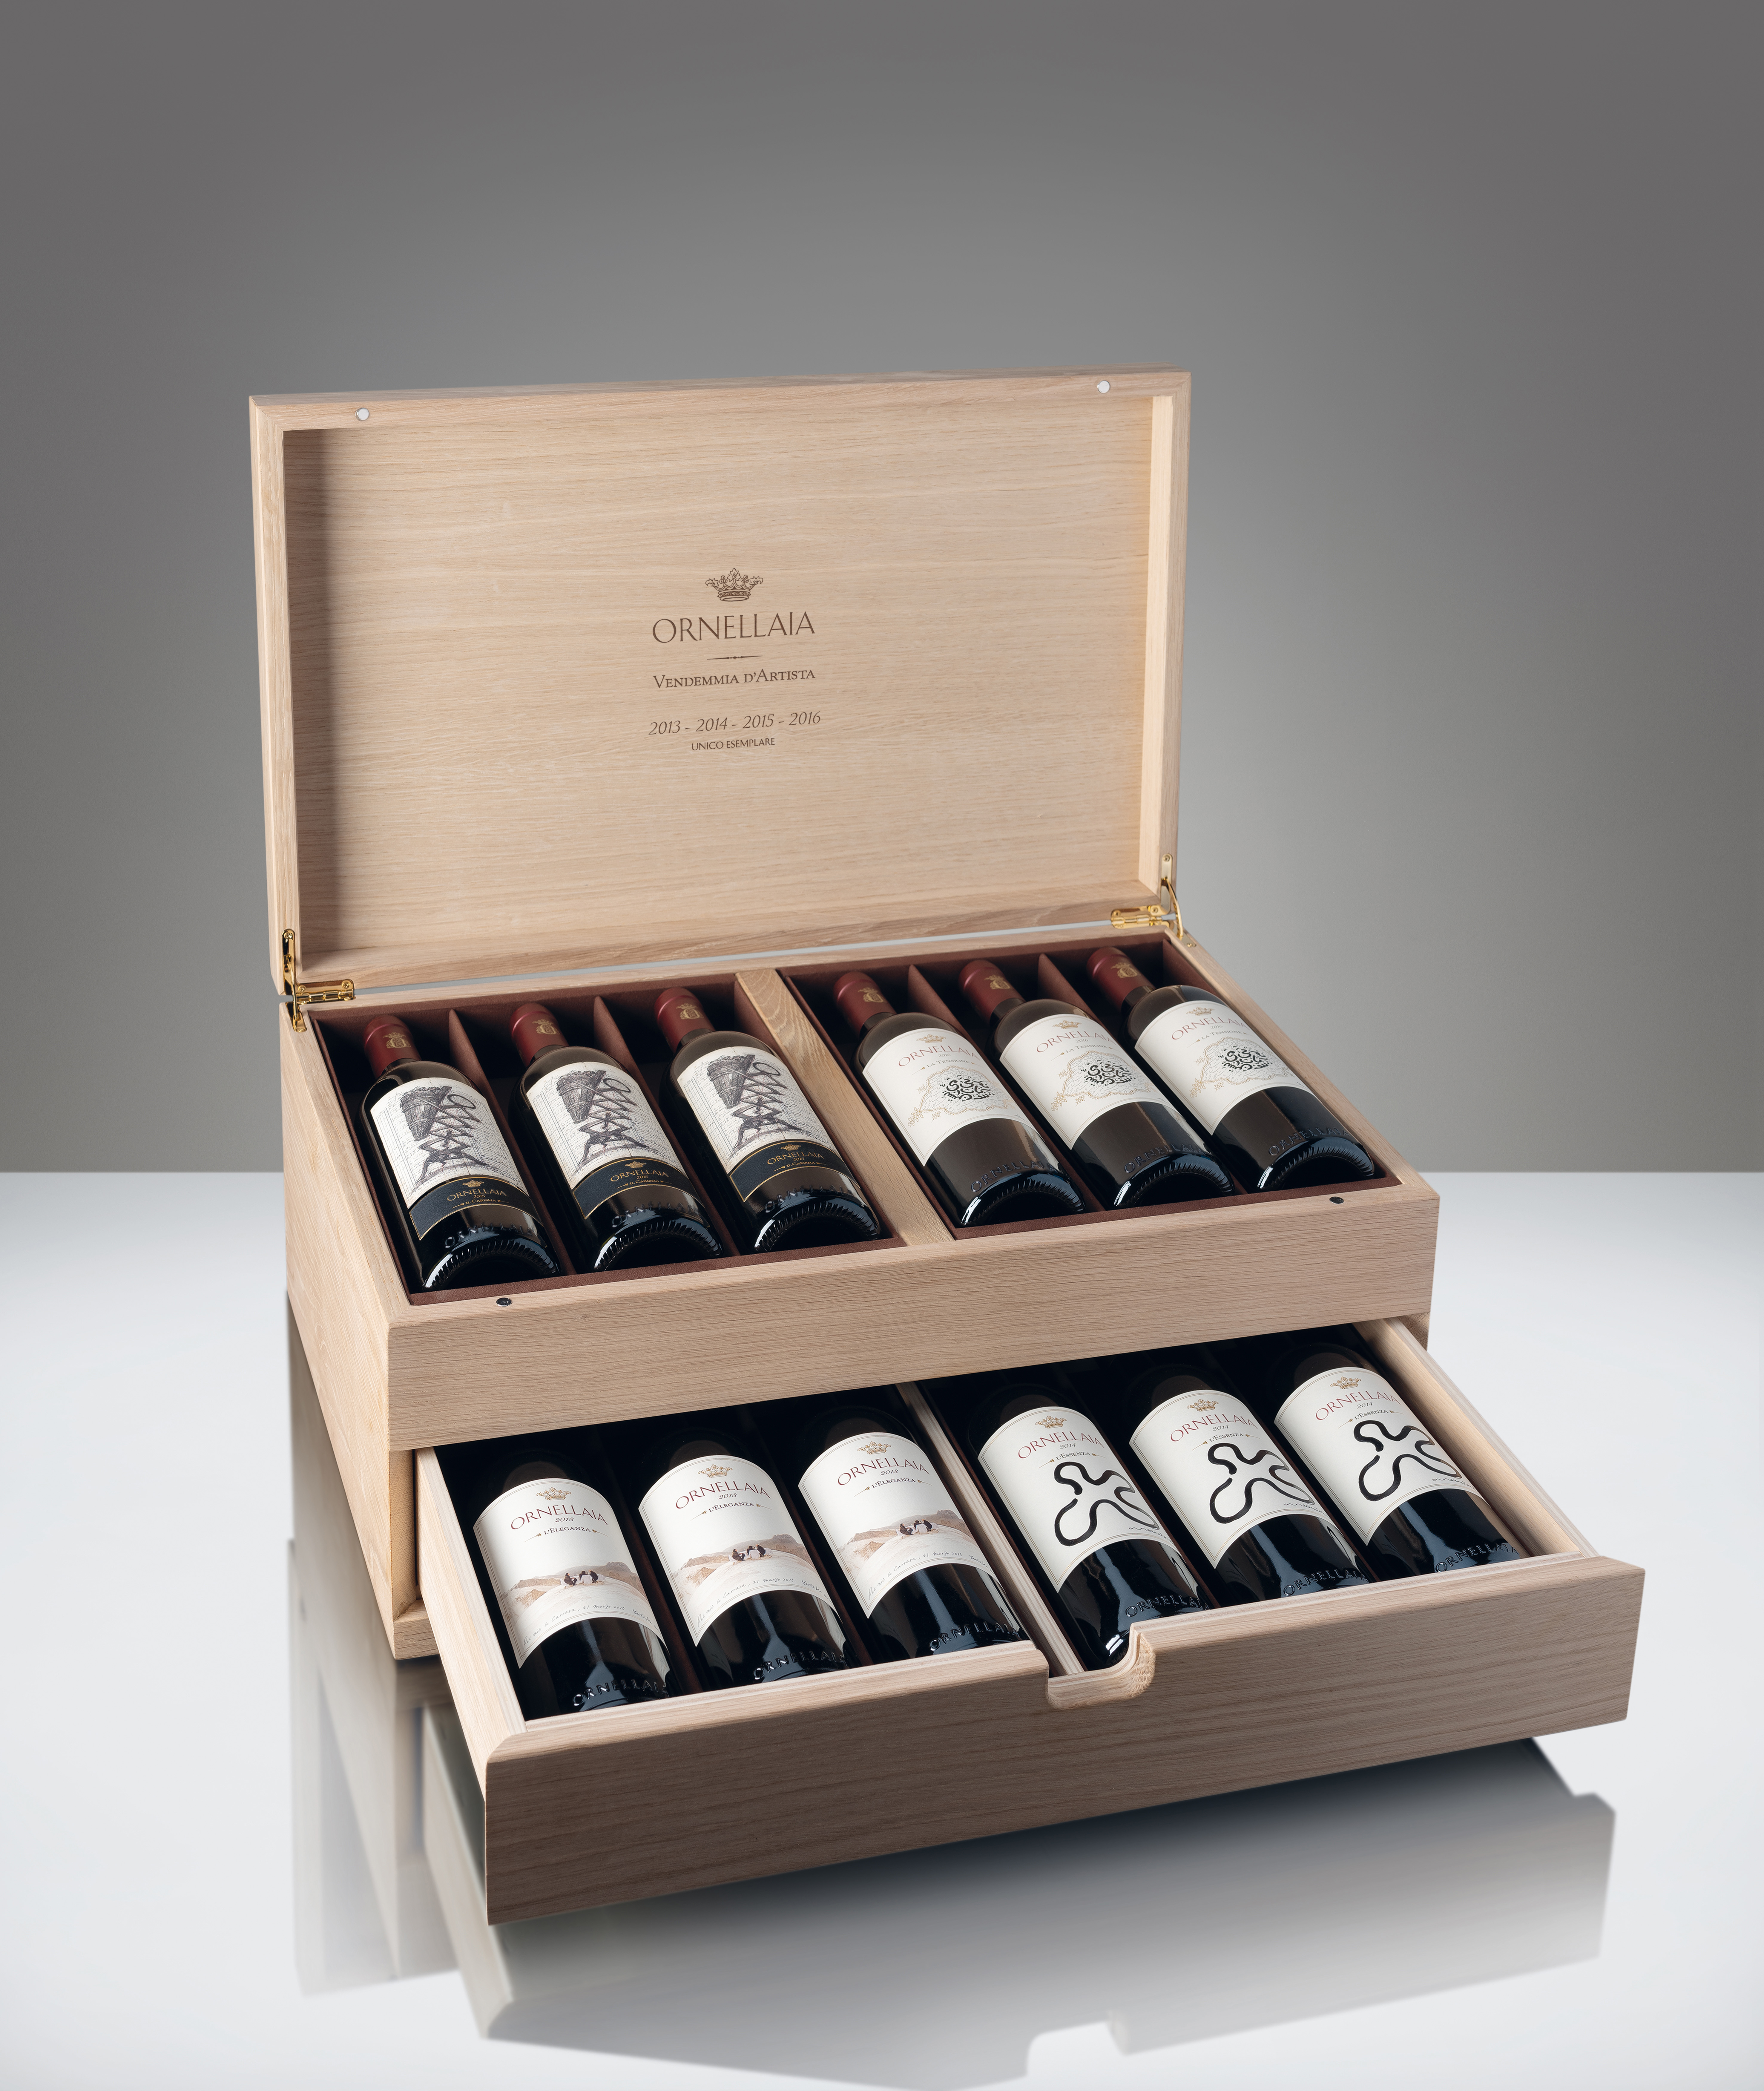 1 UNIQUE COLLECTION CASE OF 12 x 750 ML BOTTLES OF ORNELLAIA WITH VENDEMMIA D'ARTISTA LABELS